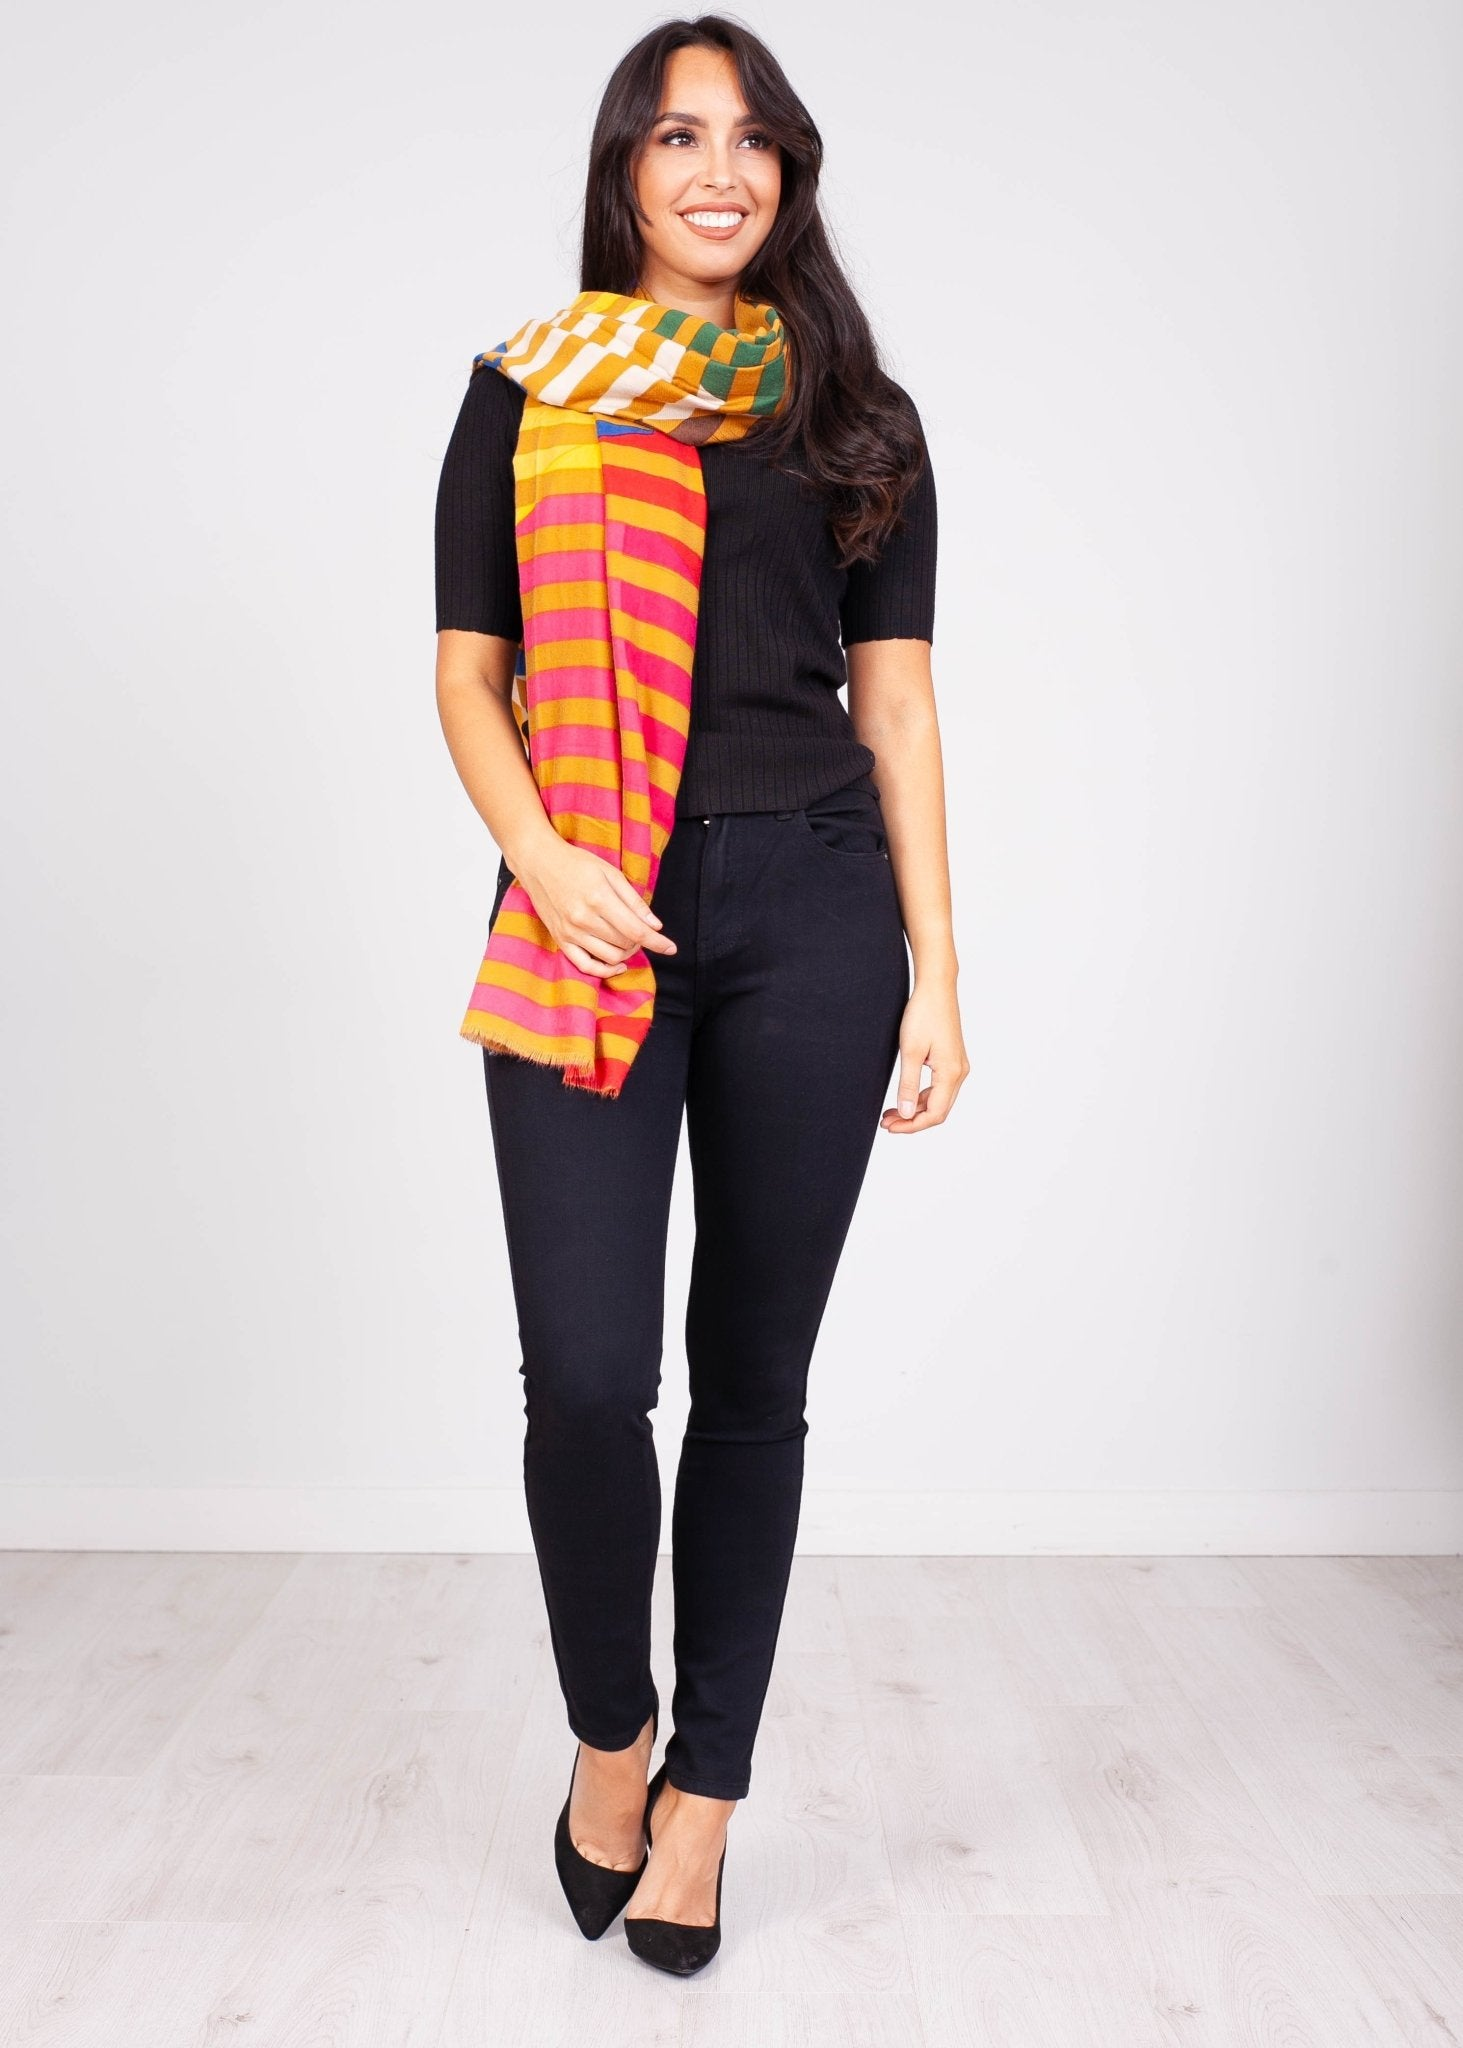 Priya Ochre & Multi Colour Scarf - The Walk in Wardrobe